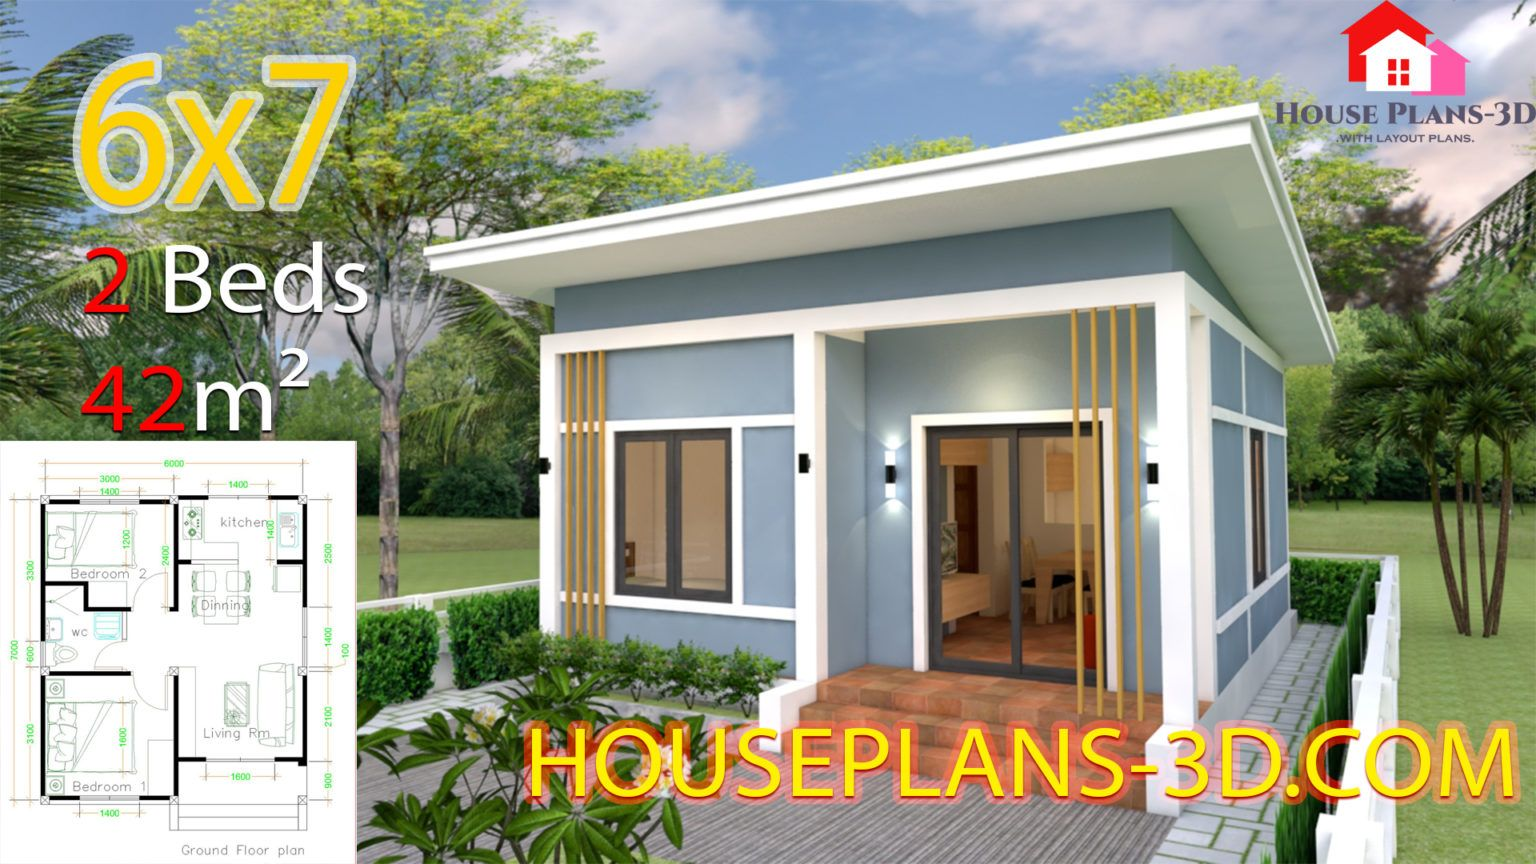 House Design 8x11 With 3 Bedrooms Full Plans House Plans 3d Small House Design Plans House Plans Small House Design